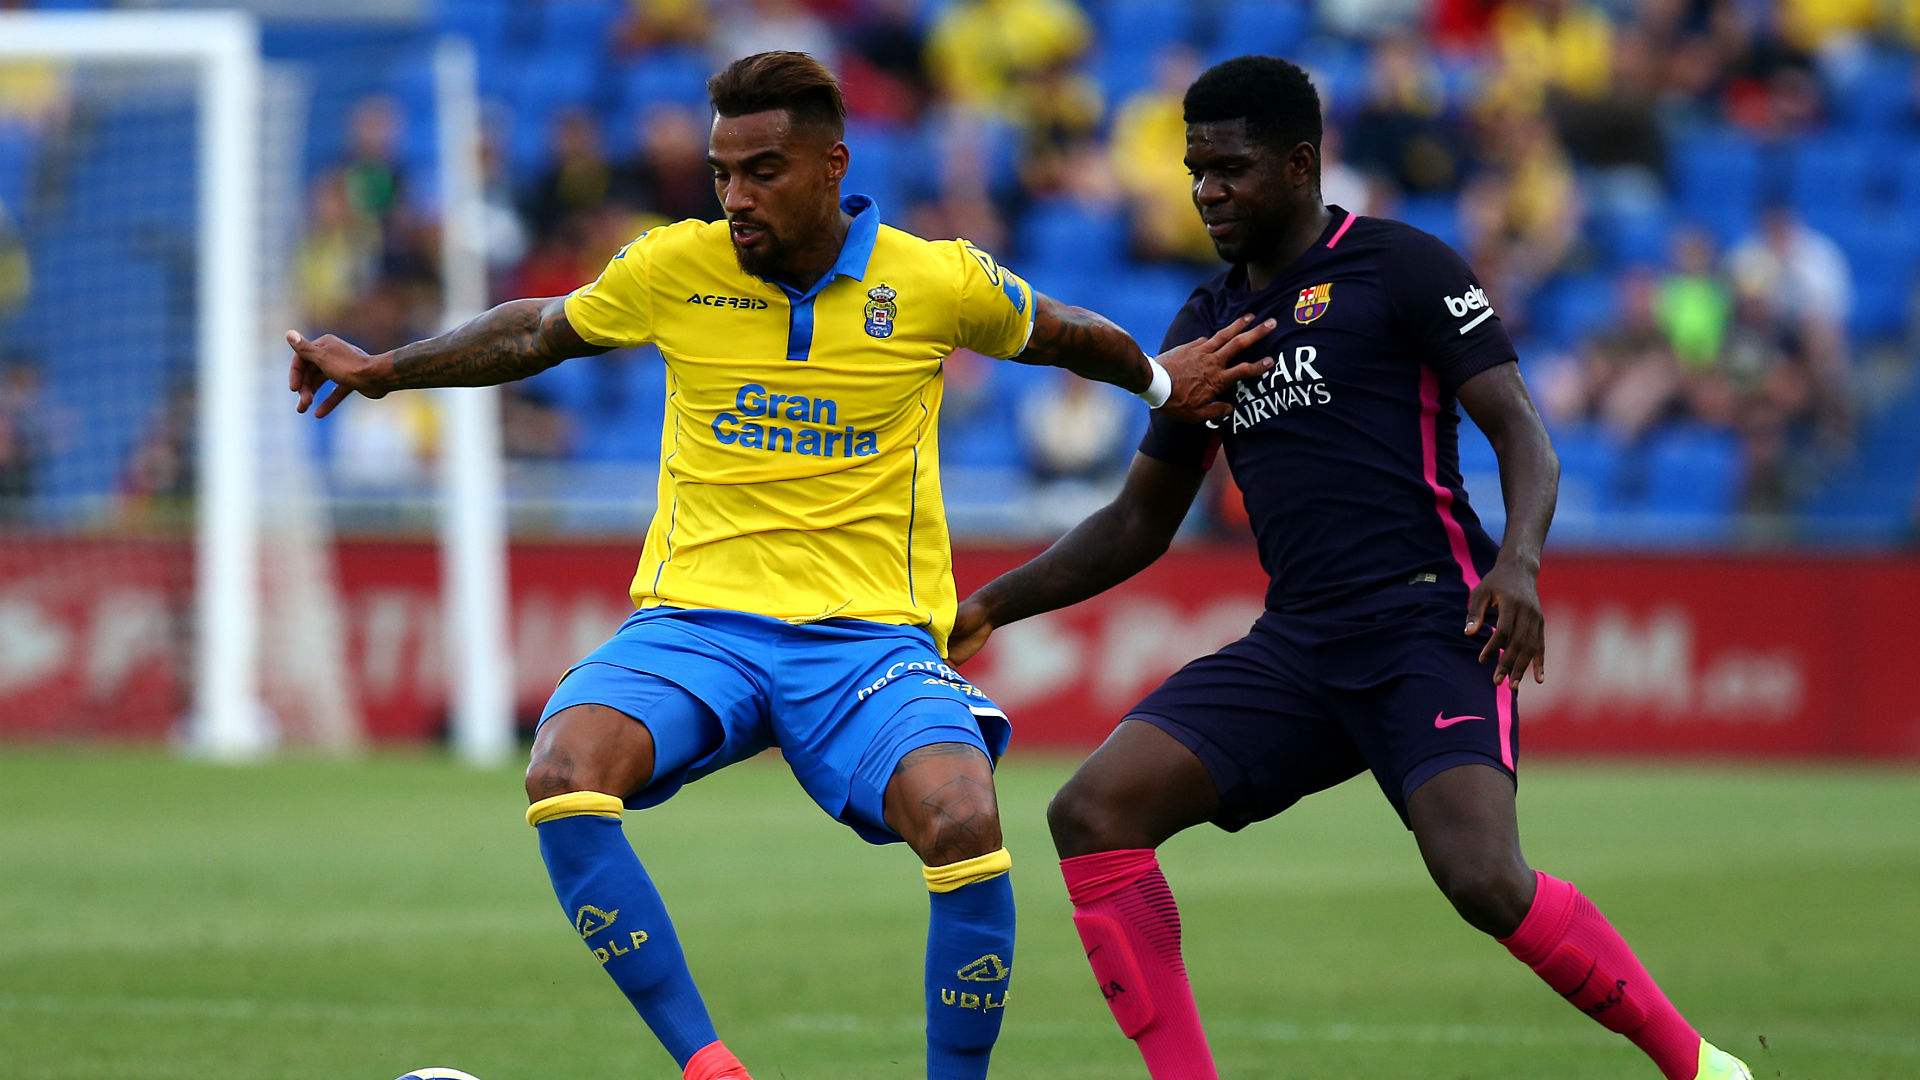 Kevin-Prince Boateng Reveals 'Non-footballing' Reason For Las Palmas Departure